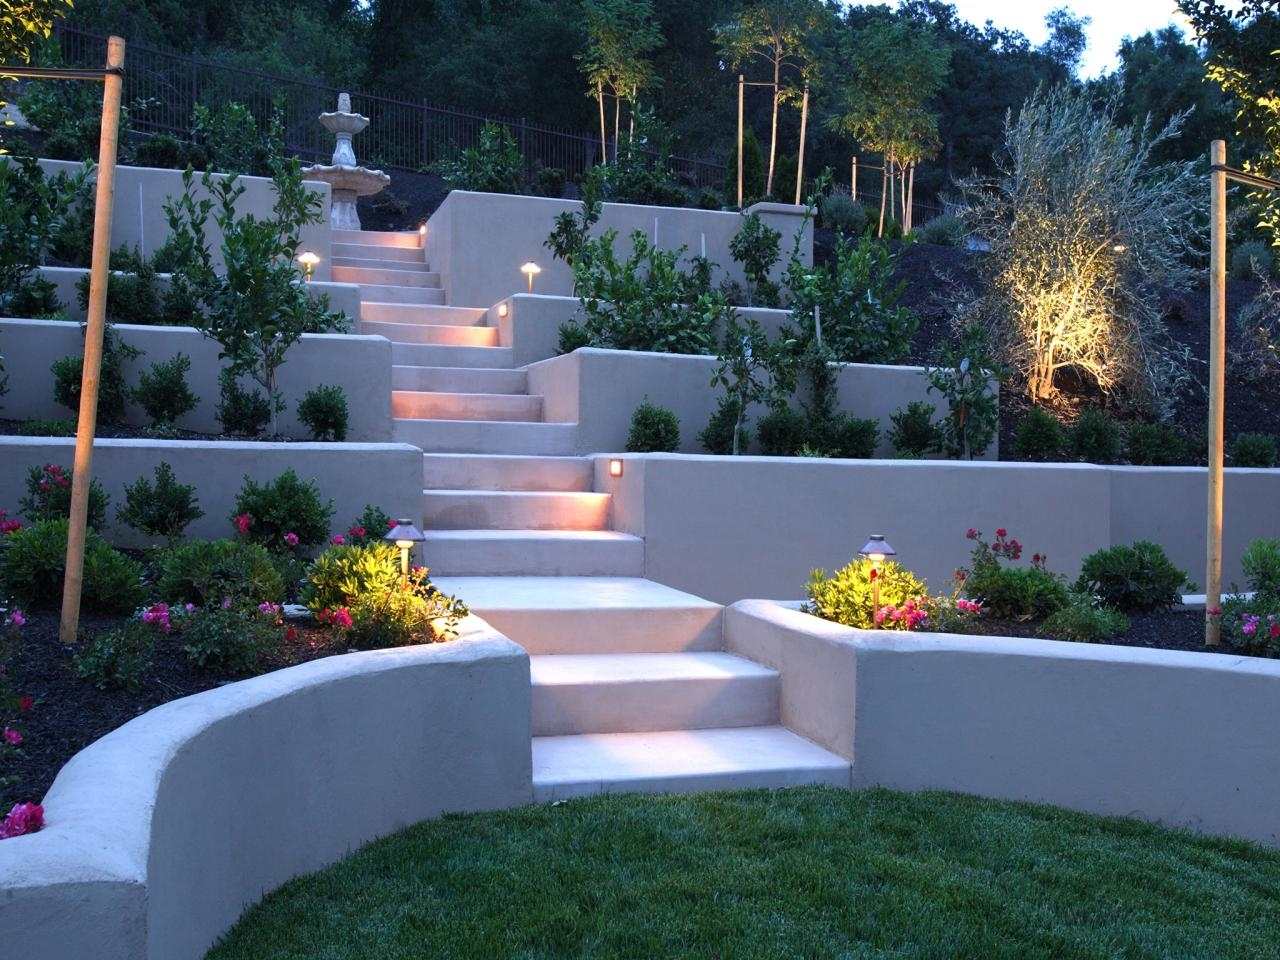 Image of: Hardscape Ideas For Slopes Finding The Hardscape Ideas For Your For Landscaping Ideas For Slopes Attractive Landscaping Ideas For Slopes